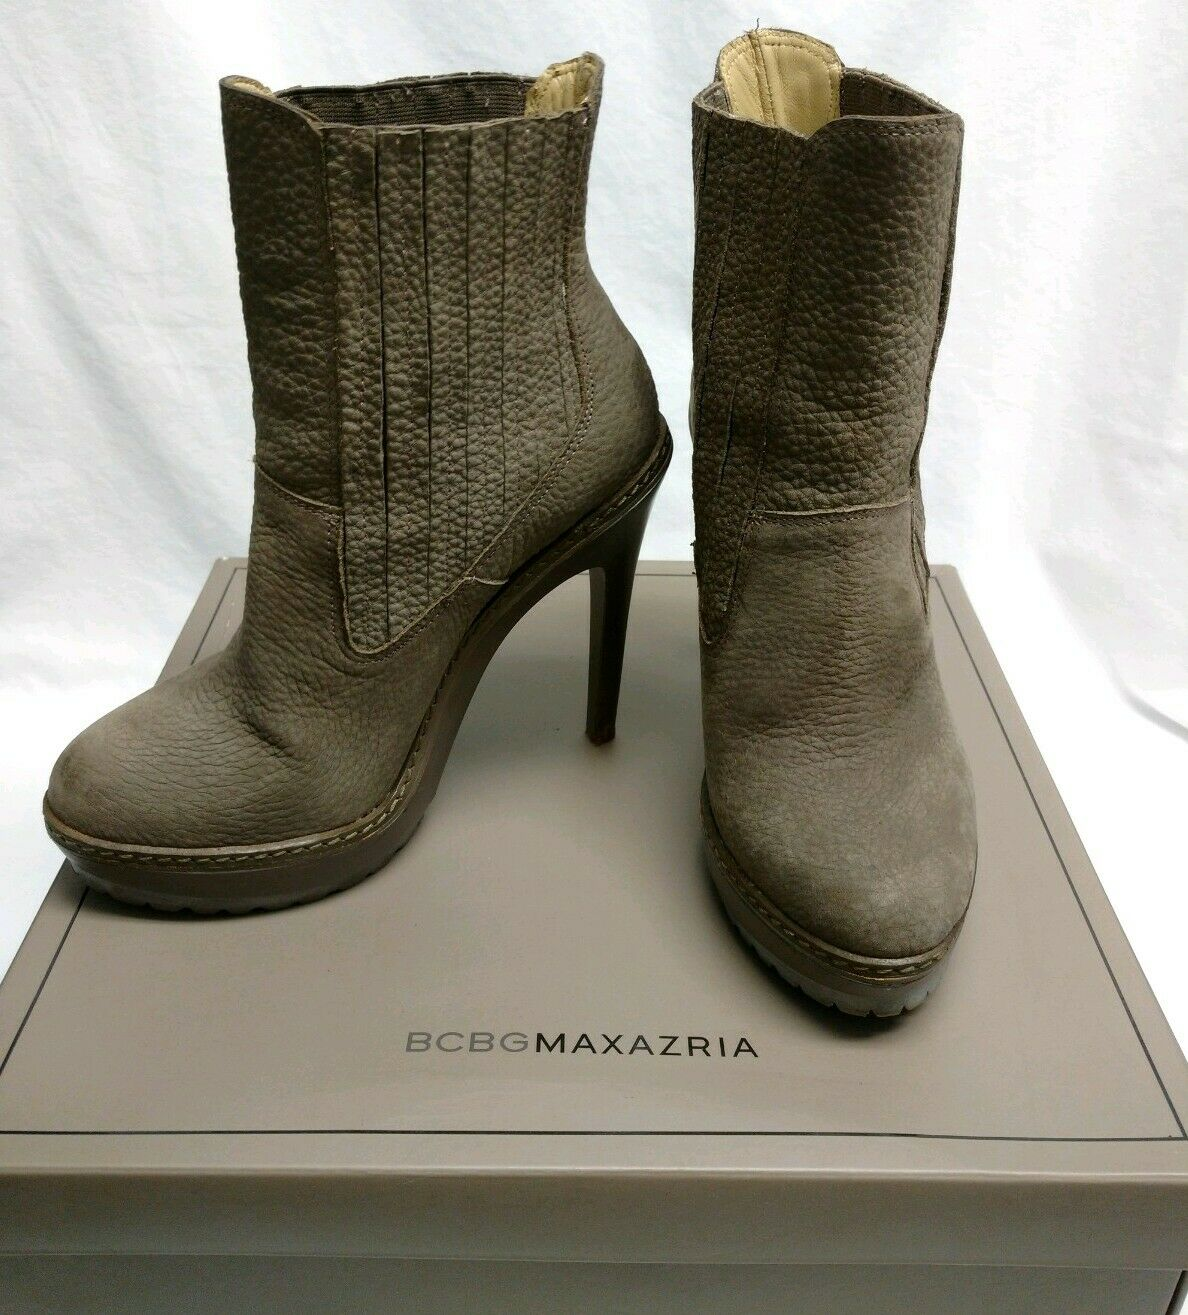 BCBG MAXAZRIA Womens High Heel Boot shoes Virginia Taupe Tumbled Nappa Size 8 M